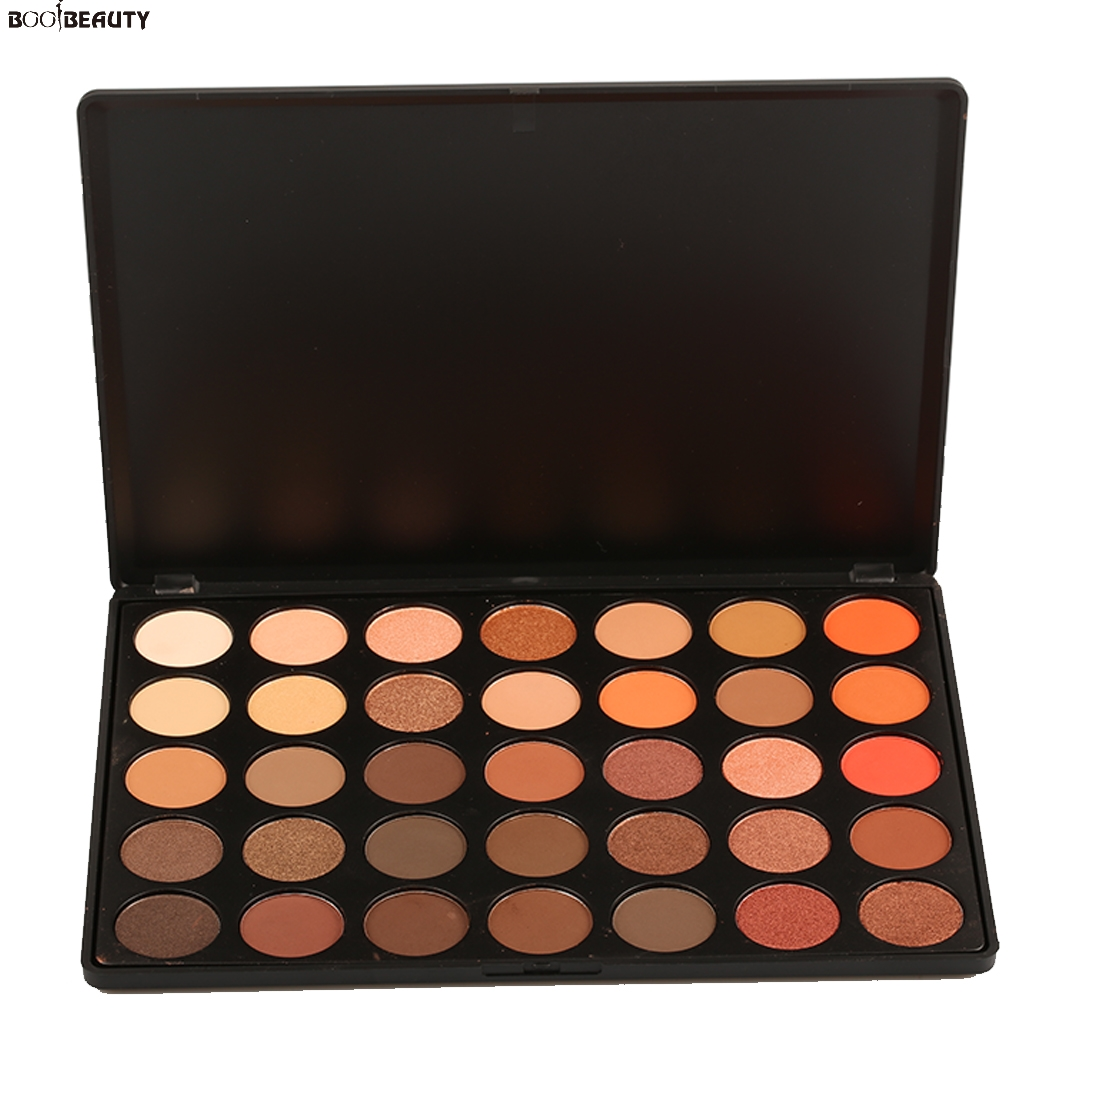 BOOBEAUTY 35 Color Eyeshadow Palette Silky Powder Professions